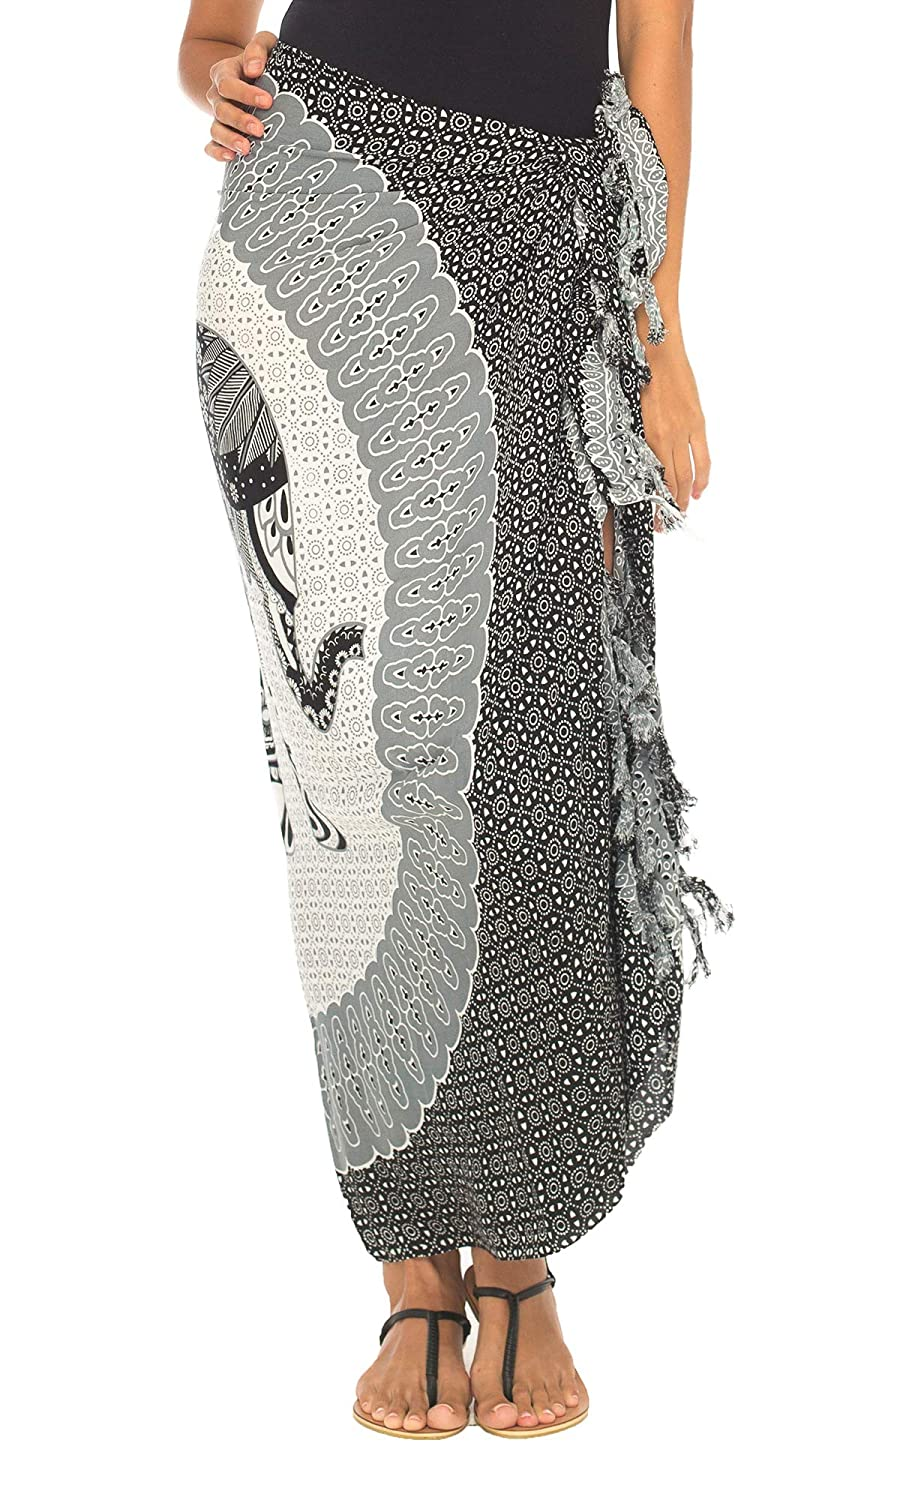 92fd773114 SHU-SHI Womens Beach Swimsuit Cover Up Sarong Wrap Elephant with Coconut  Clip Black/Grey at Amazon Women's Clothing store: